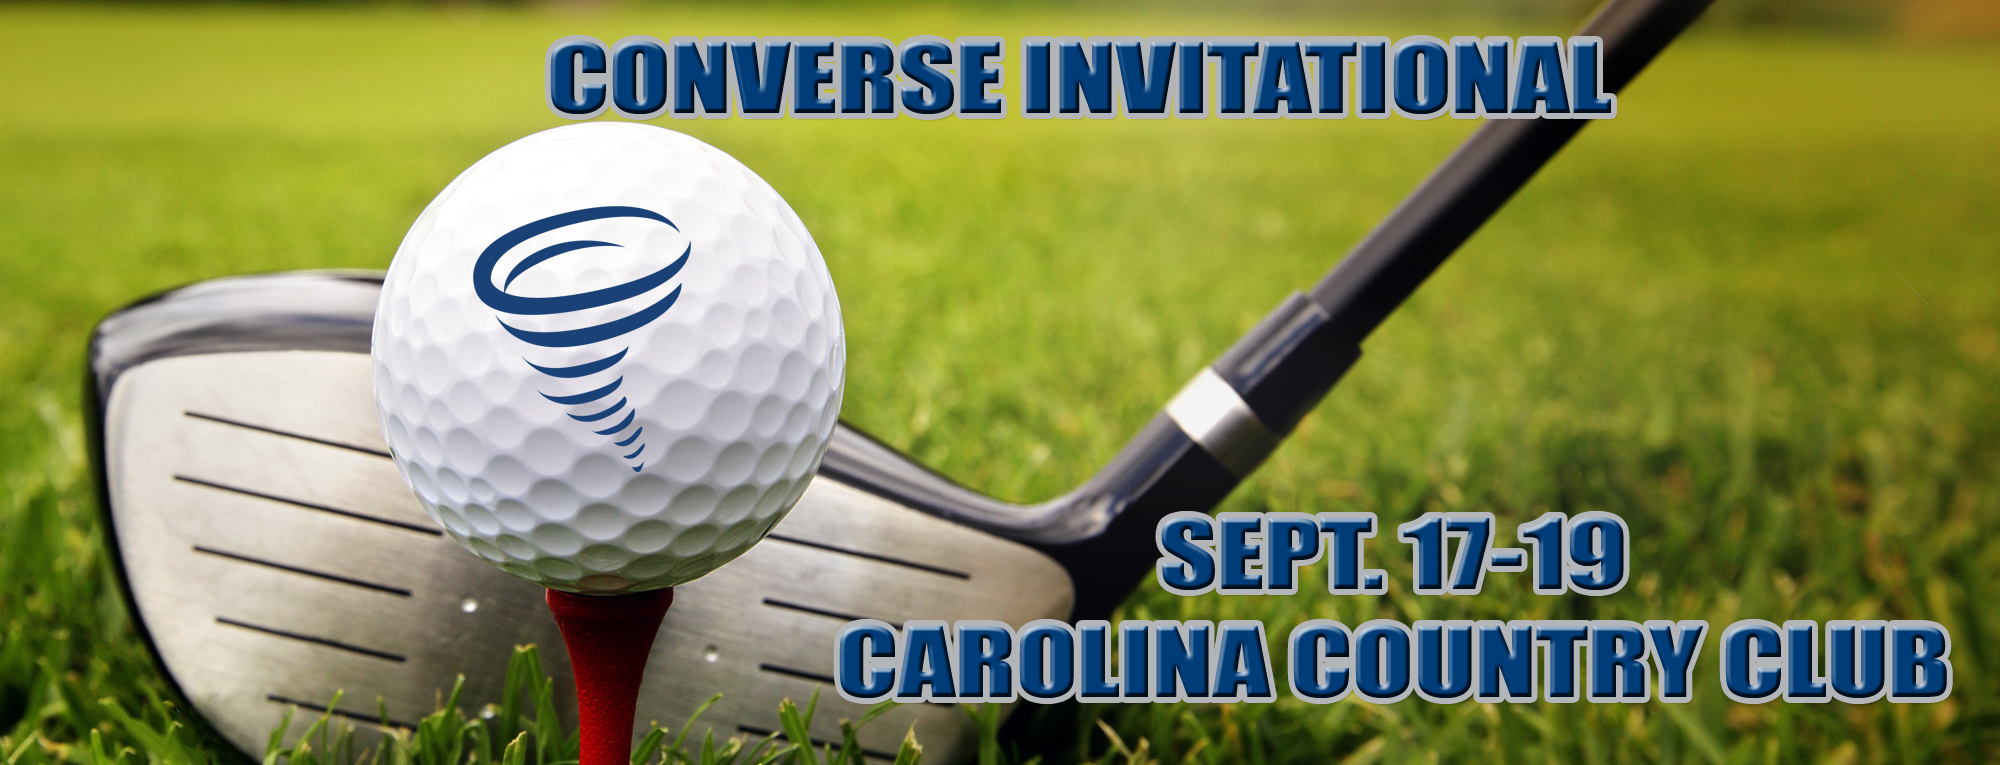 Women's Golf Opens 2017-18 at Converse Invitational